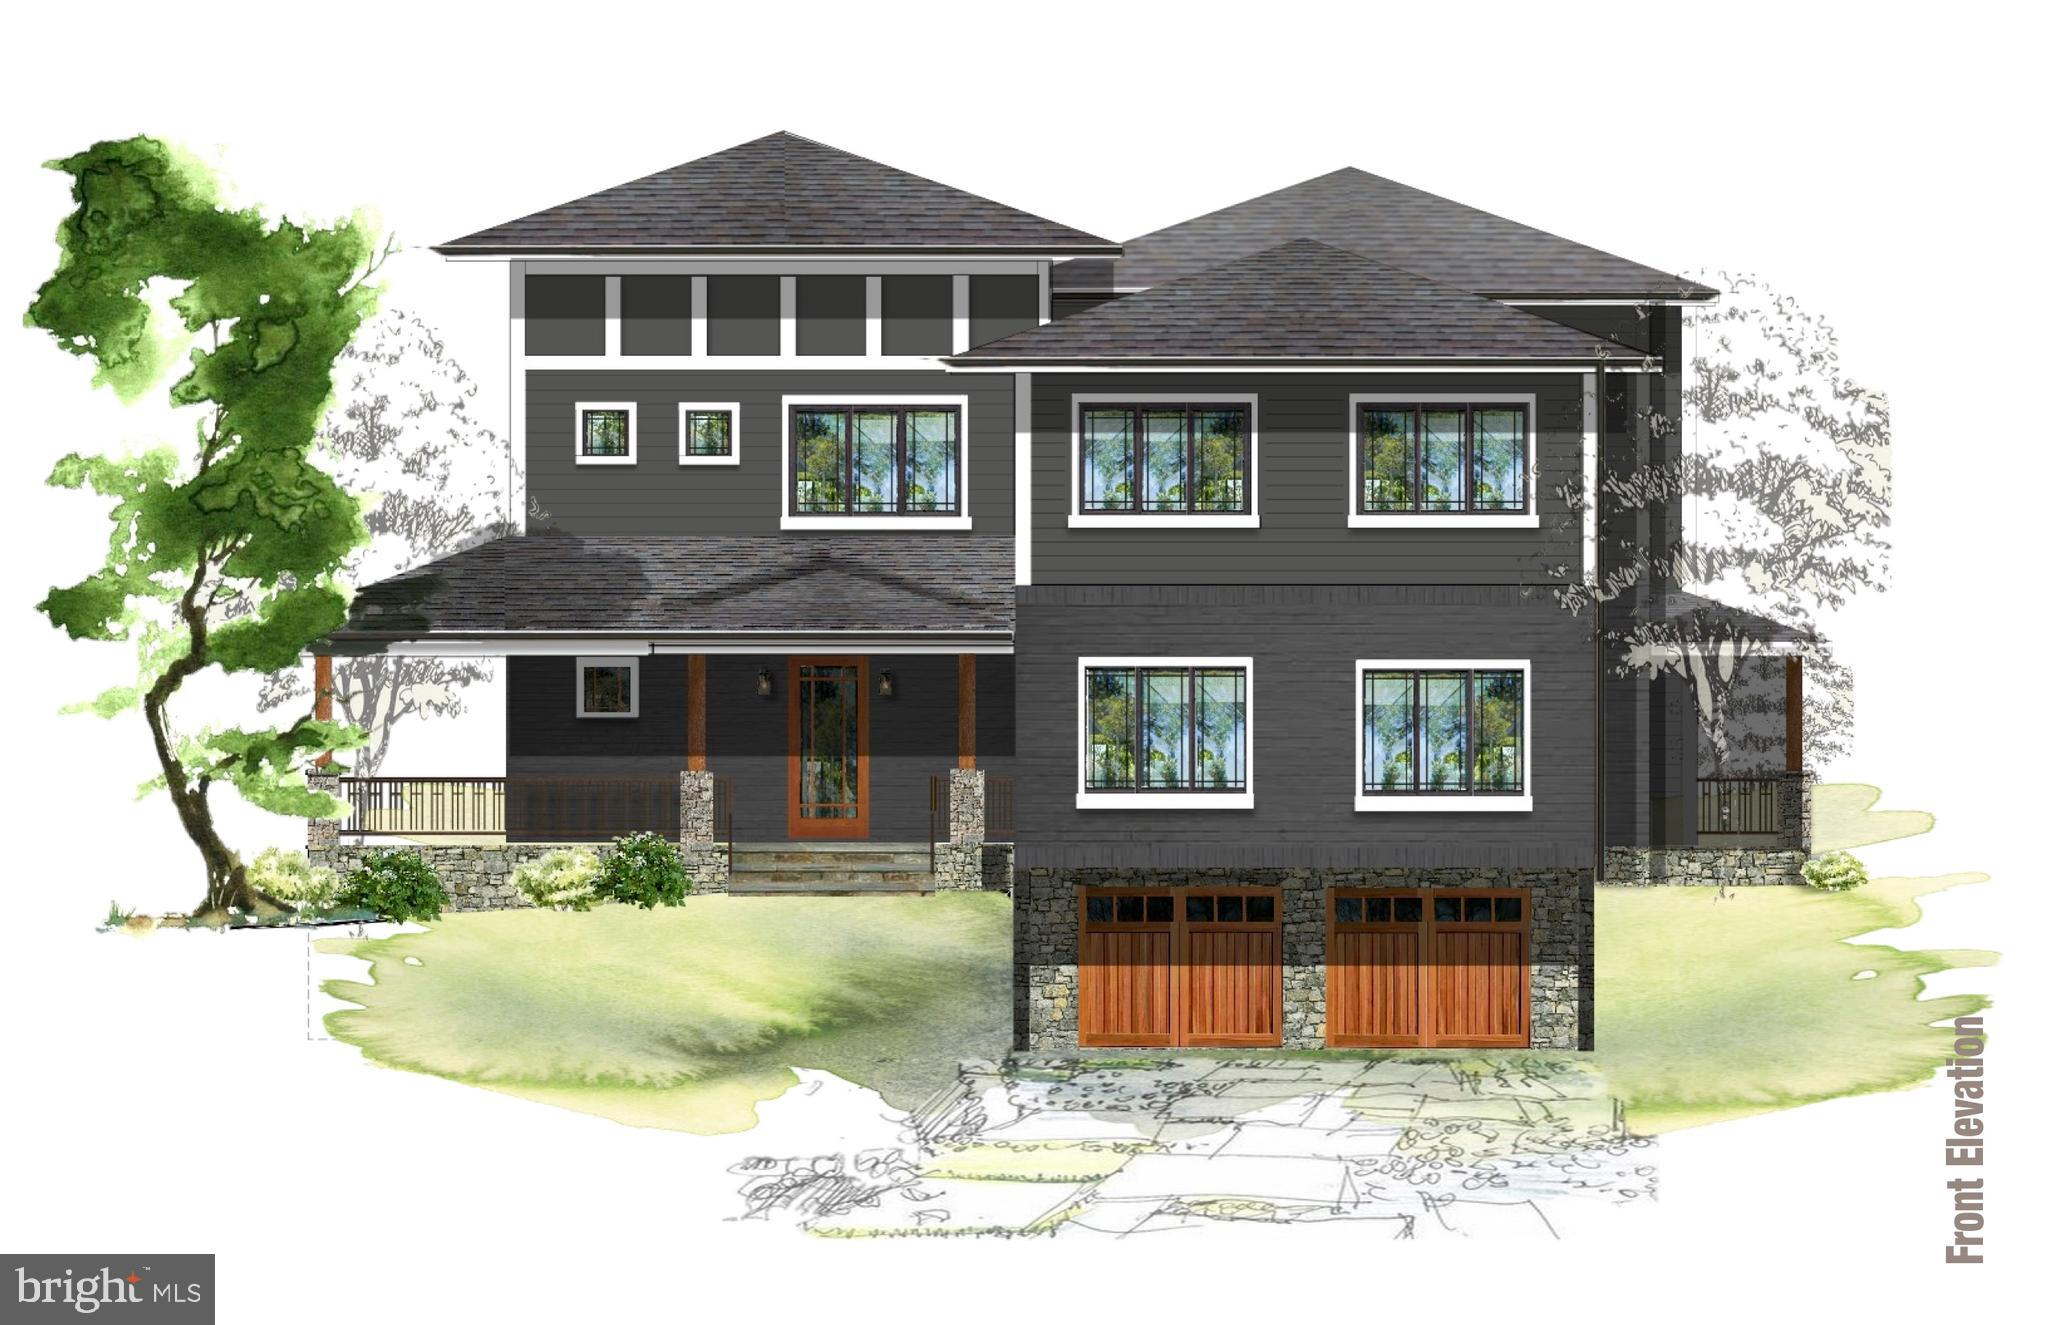 Exciting new offering from Hartland Development! On the cutting edge of trends in design and architecture, this unique home will delight you. The open spaces of the main level are further enhanced by the 10' ceilings and the upper level's 9' ceilings lend a feeling of elegance to the 4 bedrooms and 4 baths. A rough in elevator shaft has been incorporated into the plan to allow for that option. Located in the highly desirable Springfield neighborhood just a couple blocks from Wood Acres Elementary School and the popular Wood Acres Park, this fantastic home is served by Walt Whitman High School. Fall 2019 delivery is expected.